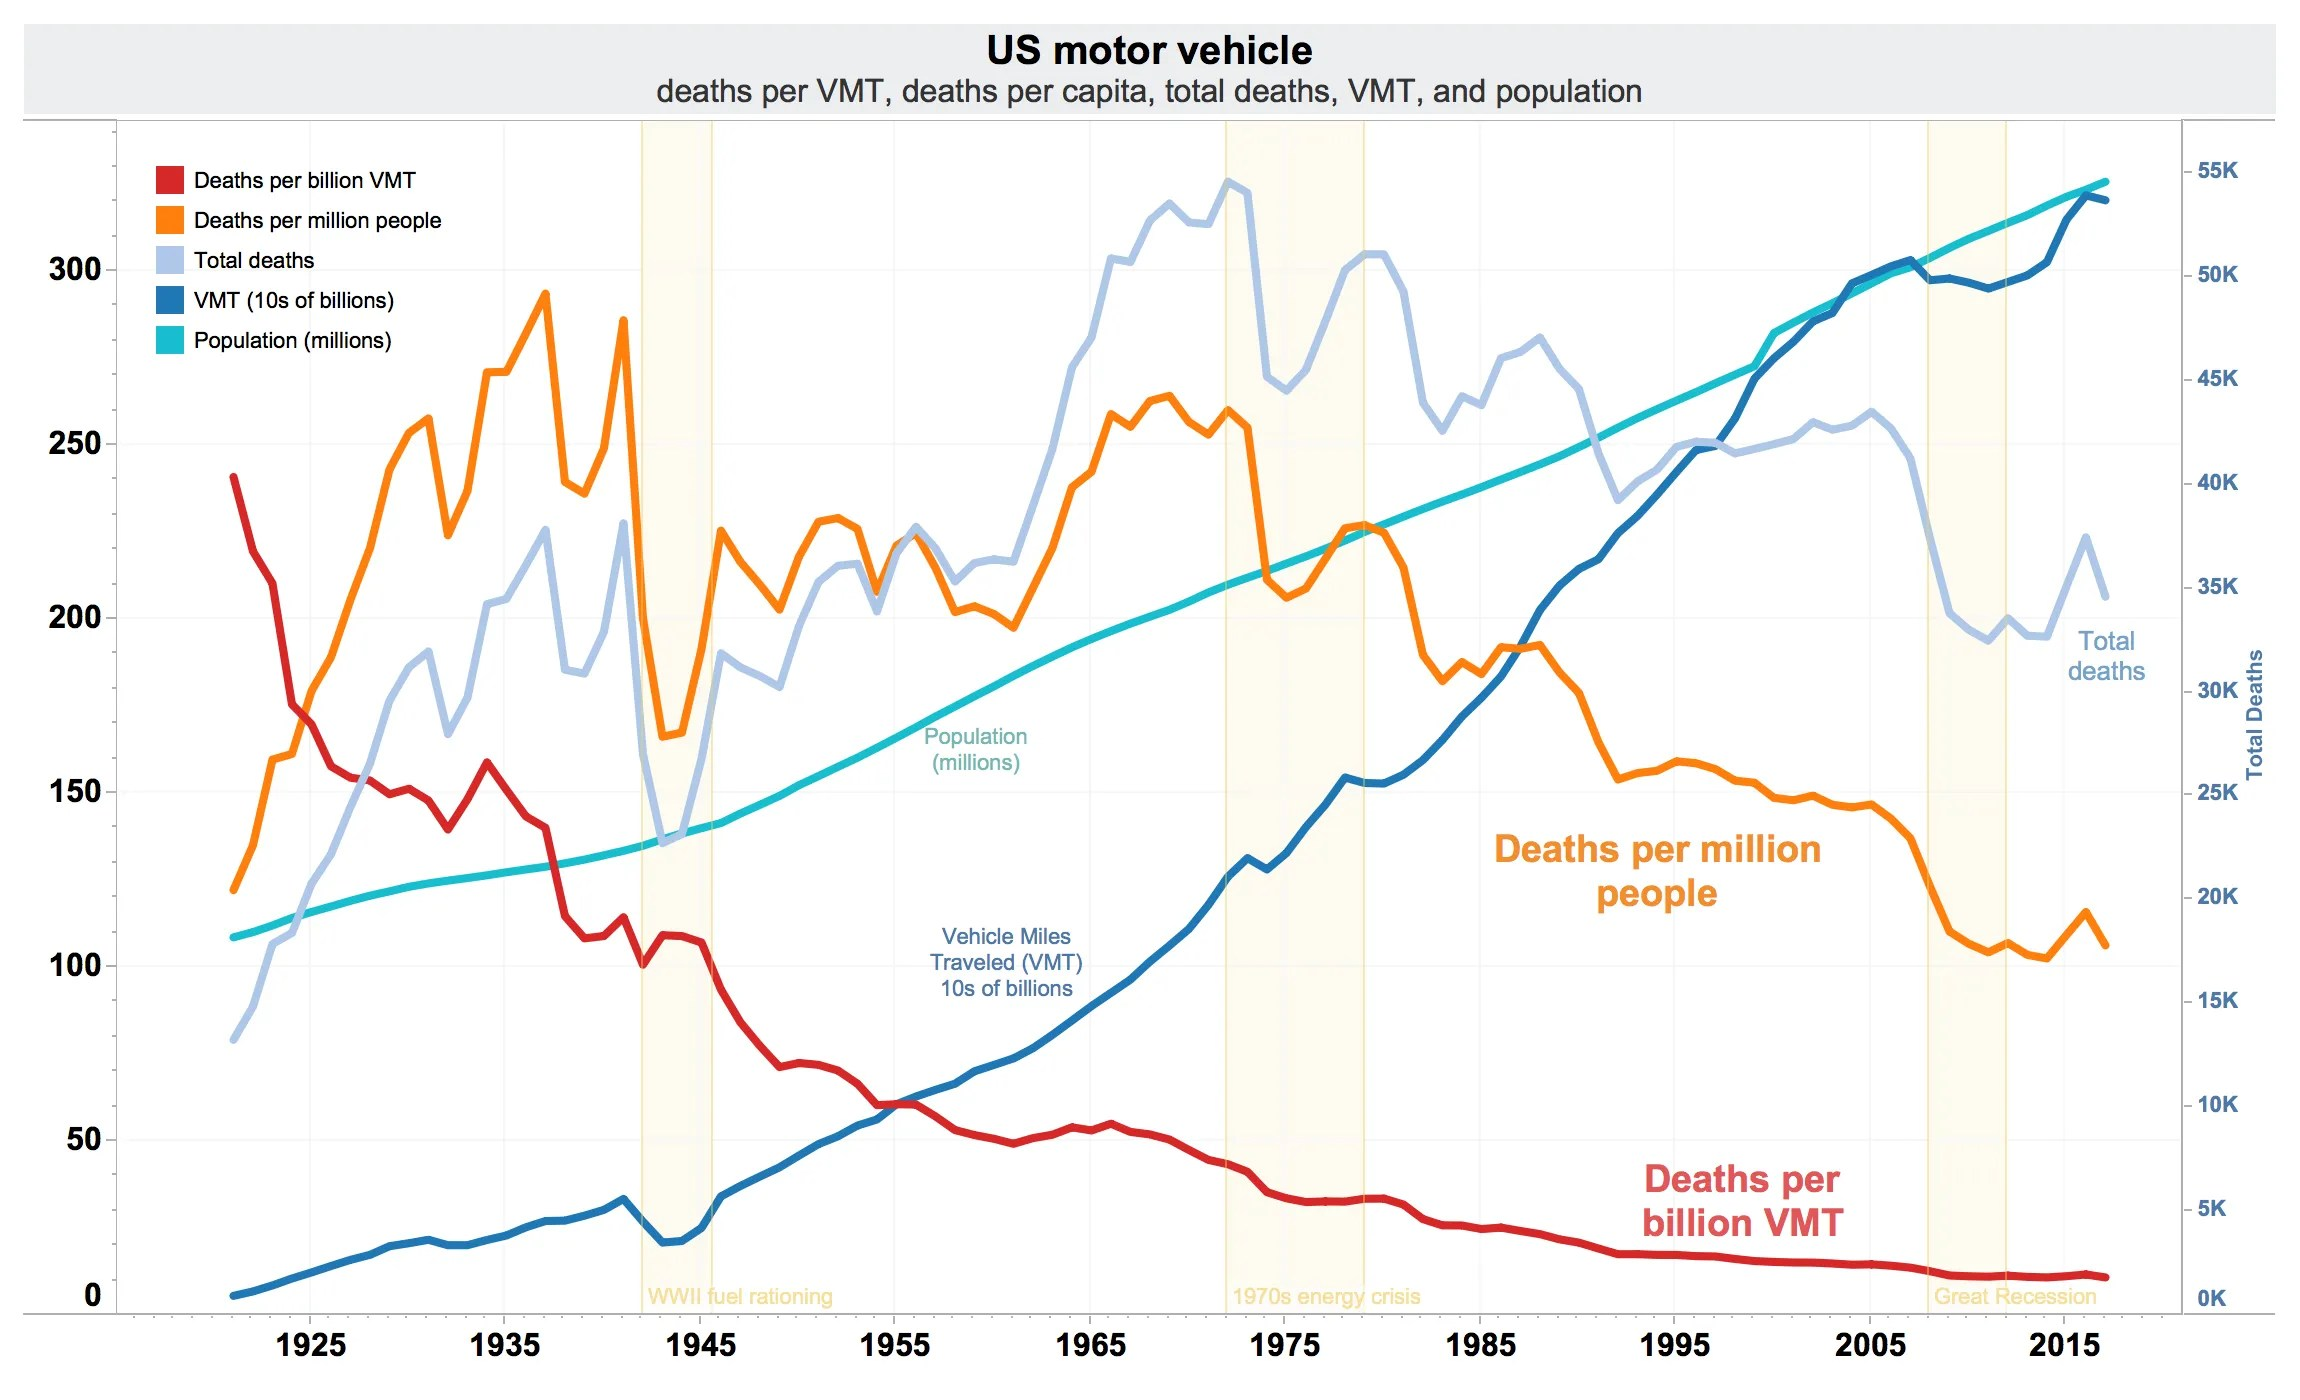 U.S. Traffic Deaths Over Time